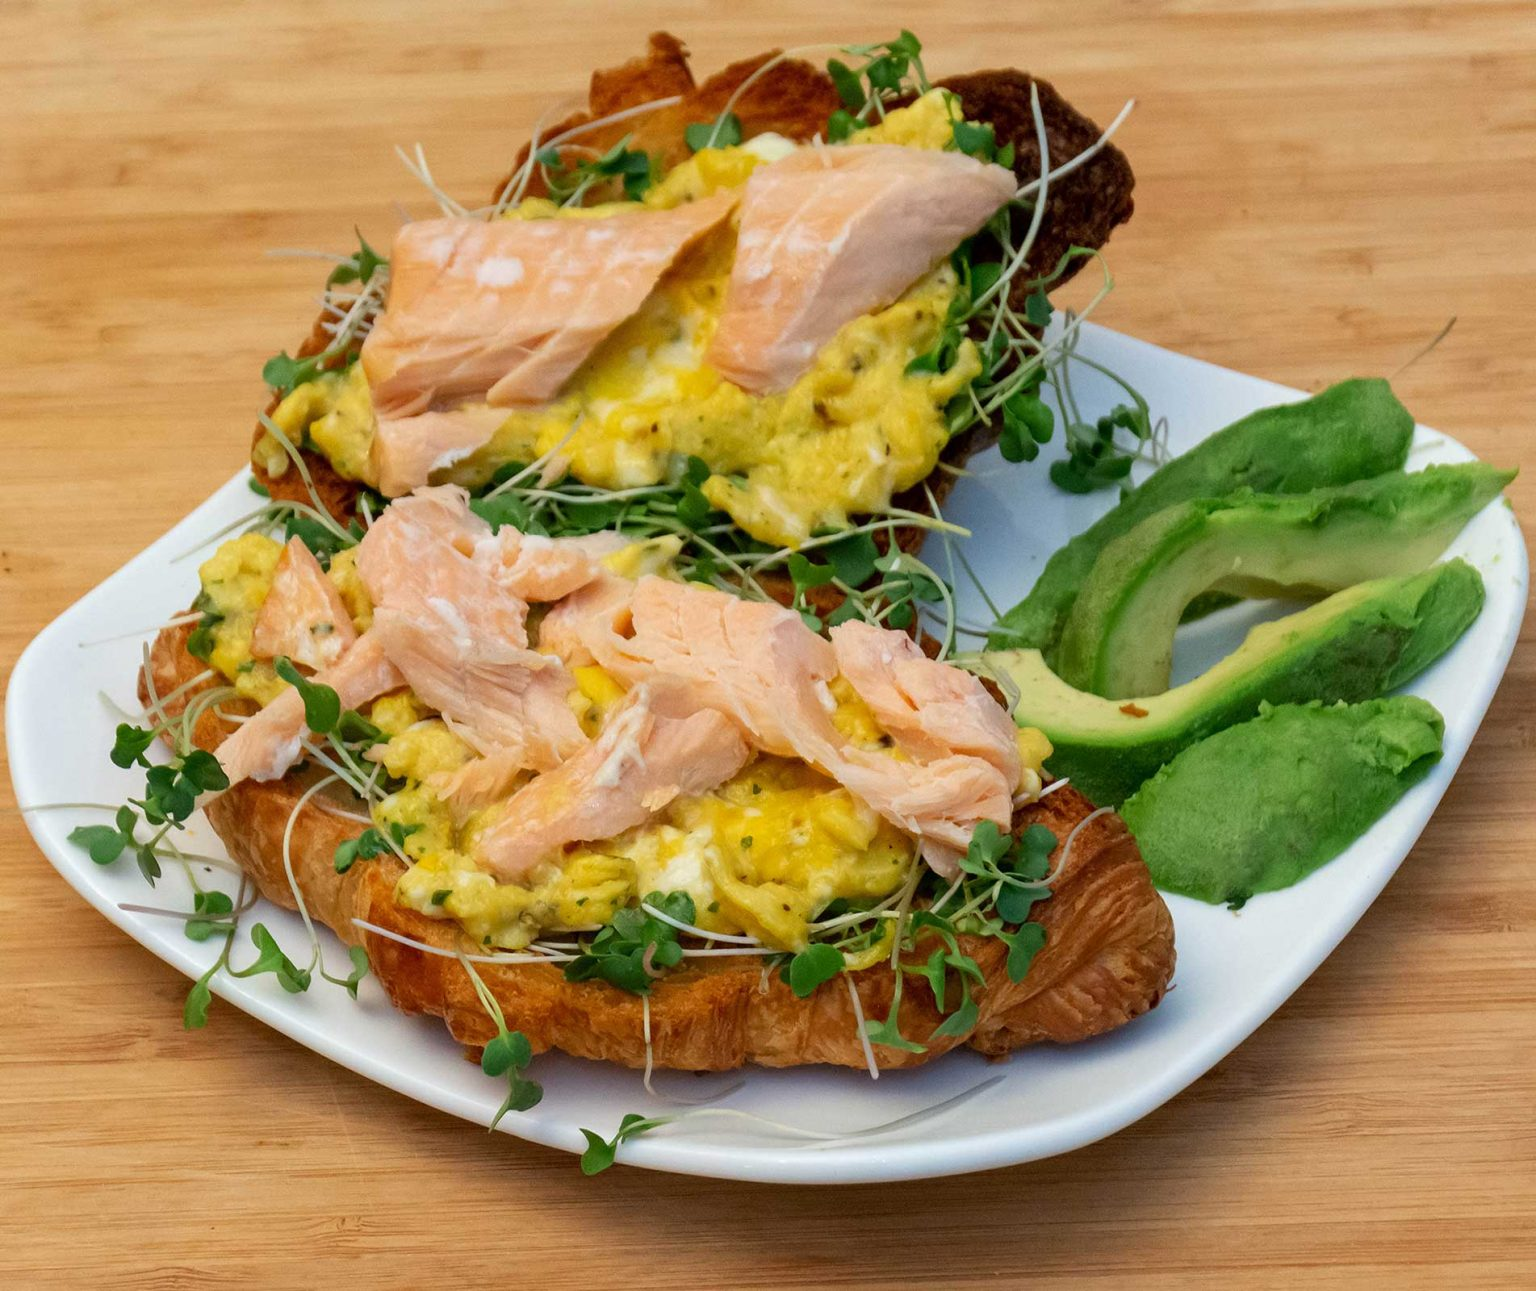 Salmon egg and sprouts on a croissant